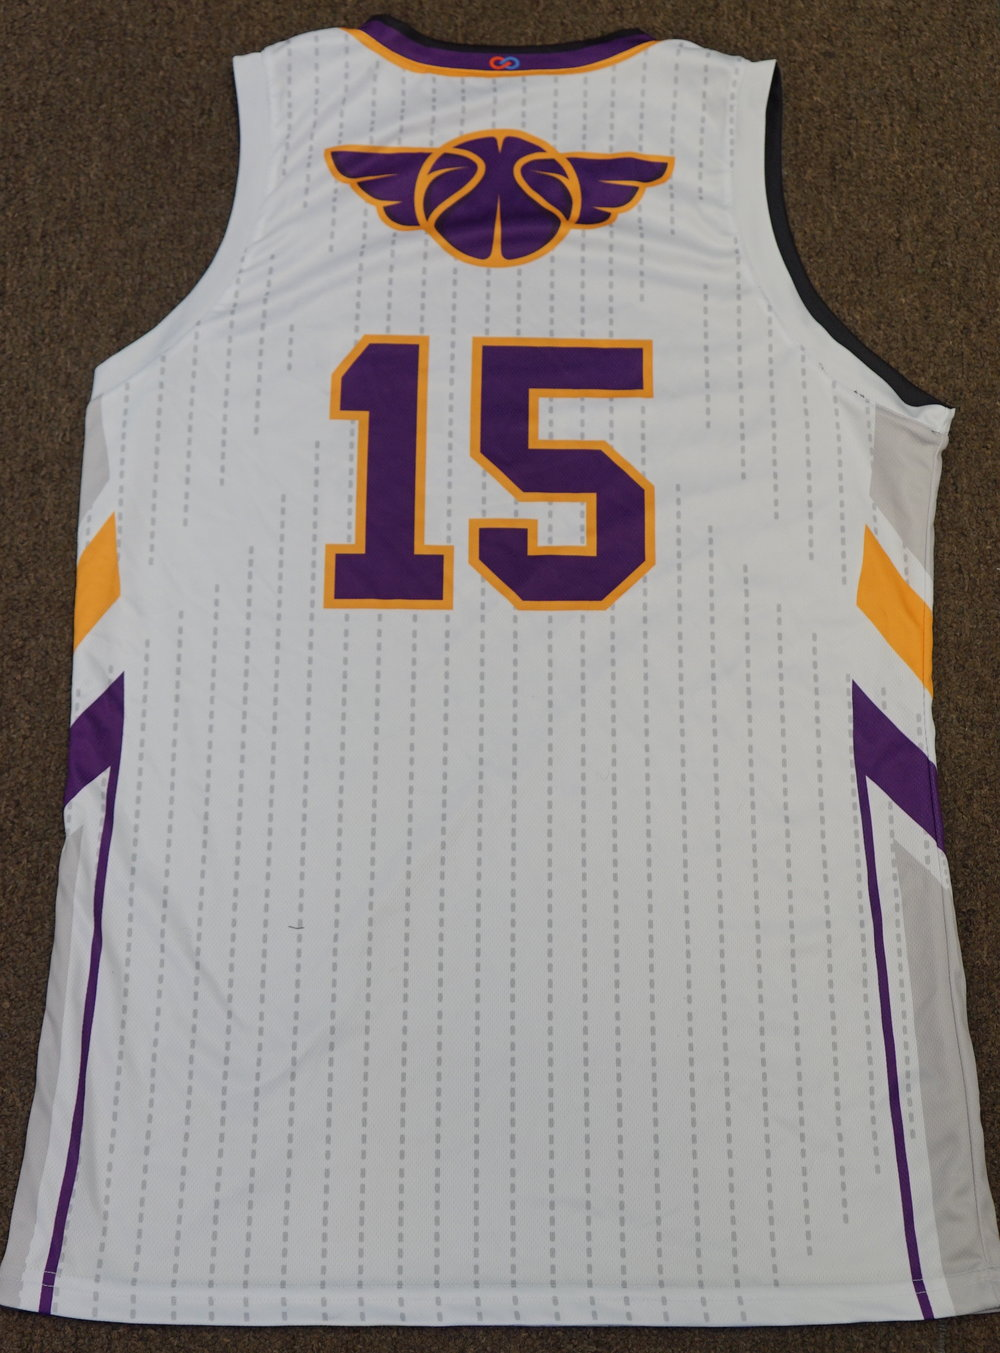 DREAM LEAGUES White Purple Black Orange and Yellow Basketball Uniforms, Jerseys